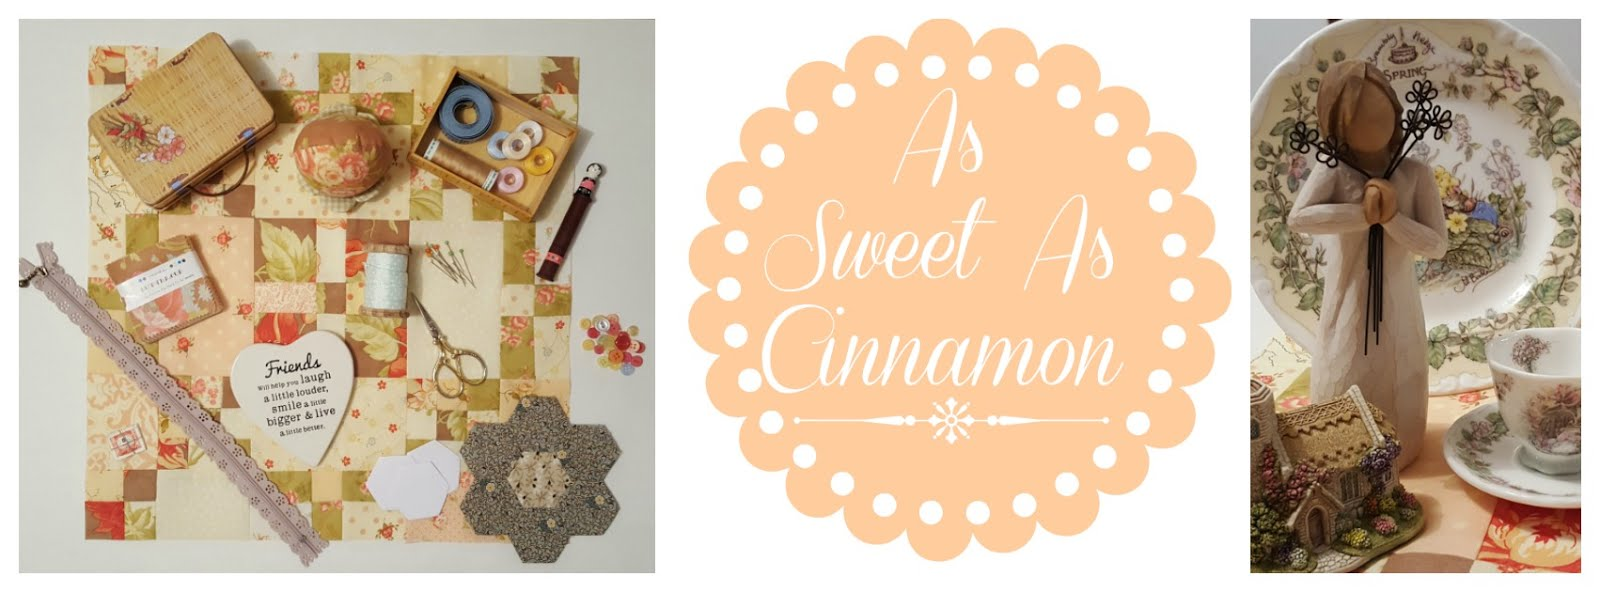 'As Sweet as Cinnamon'